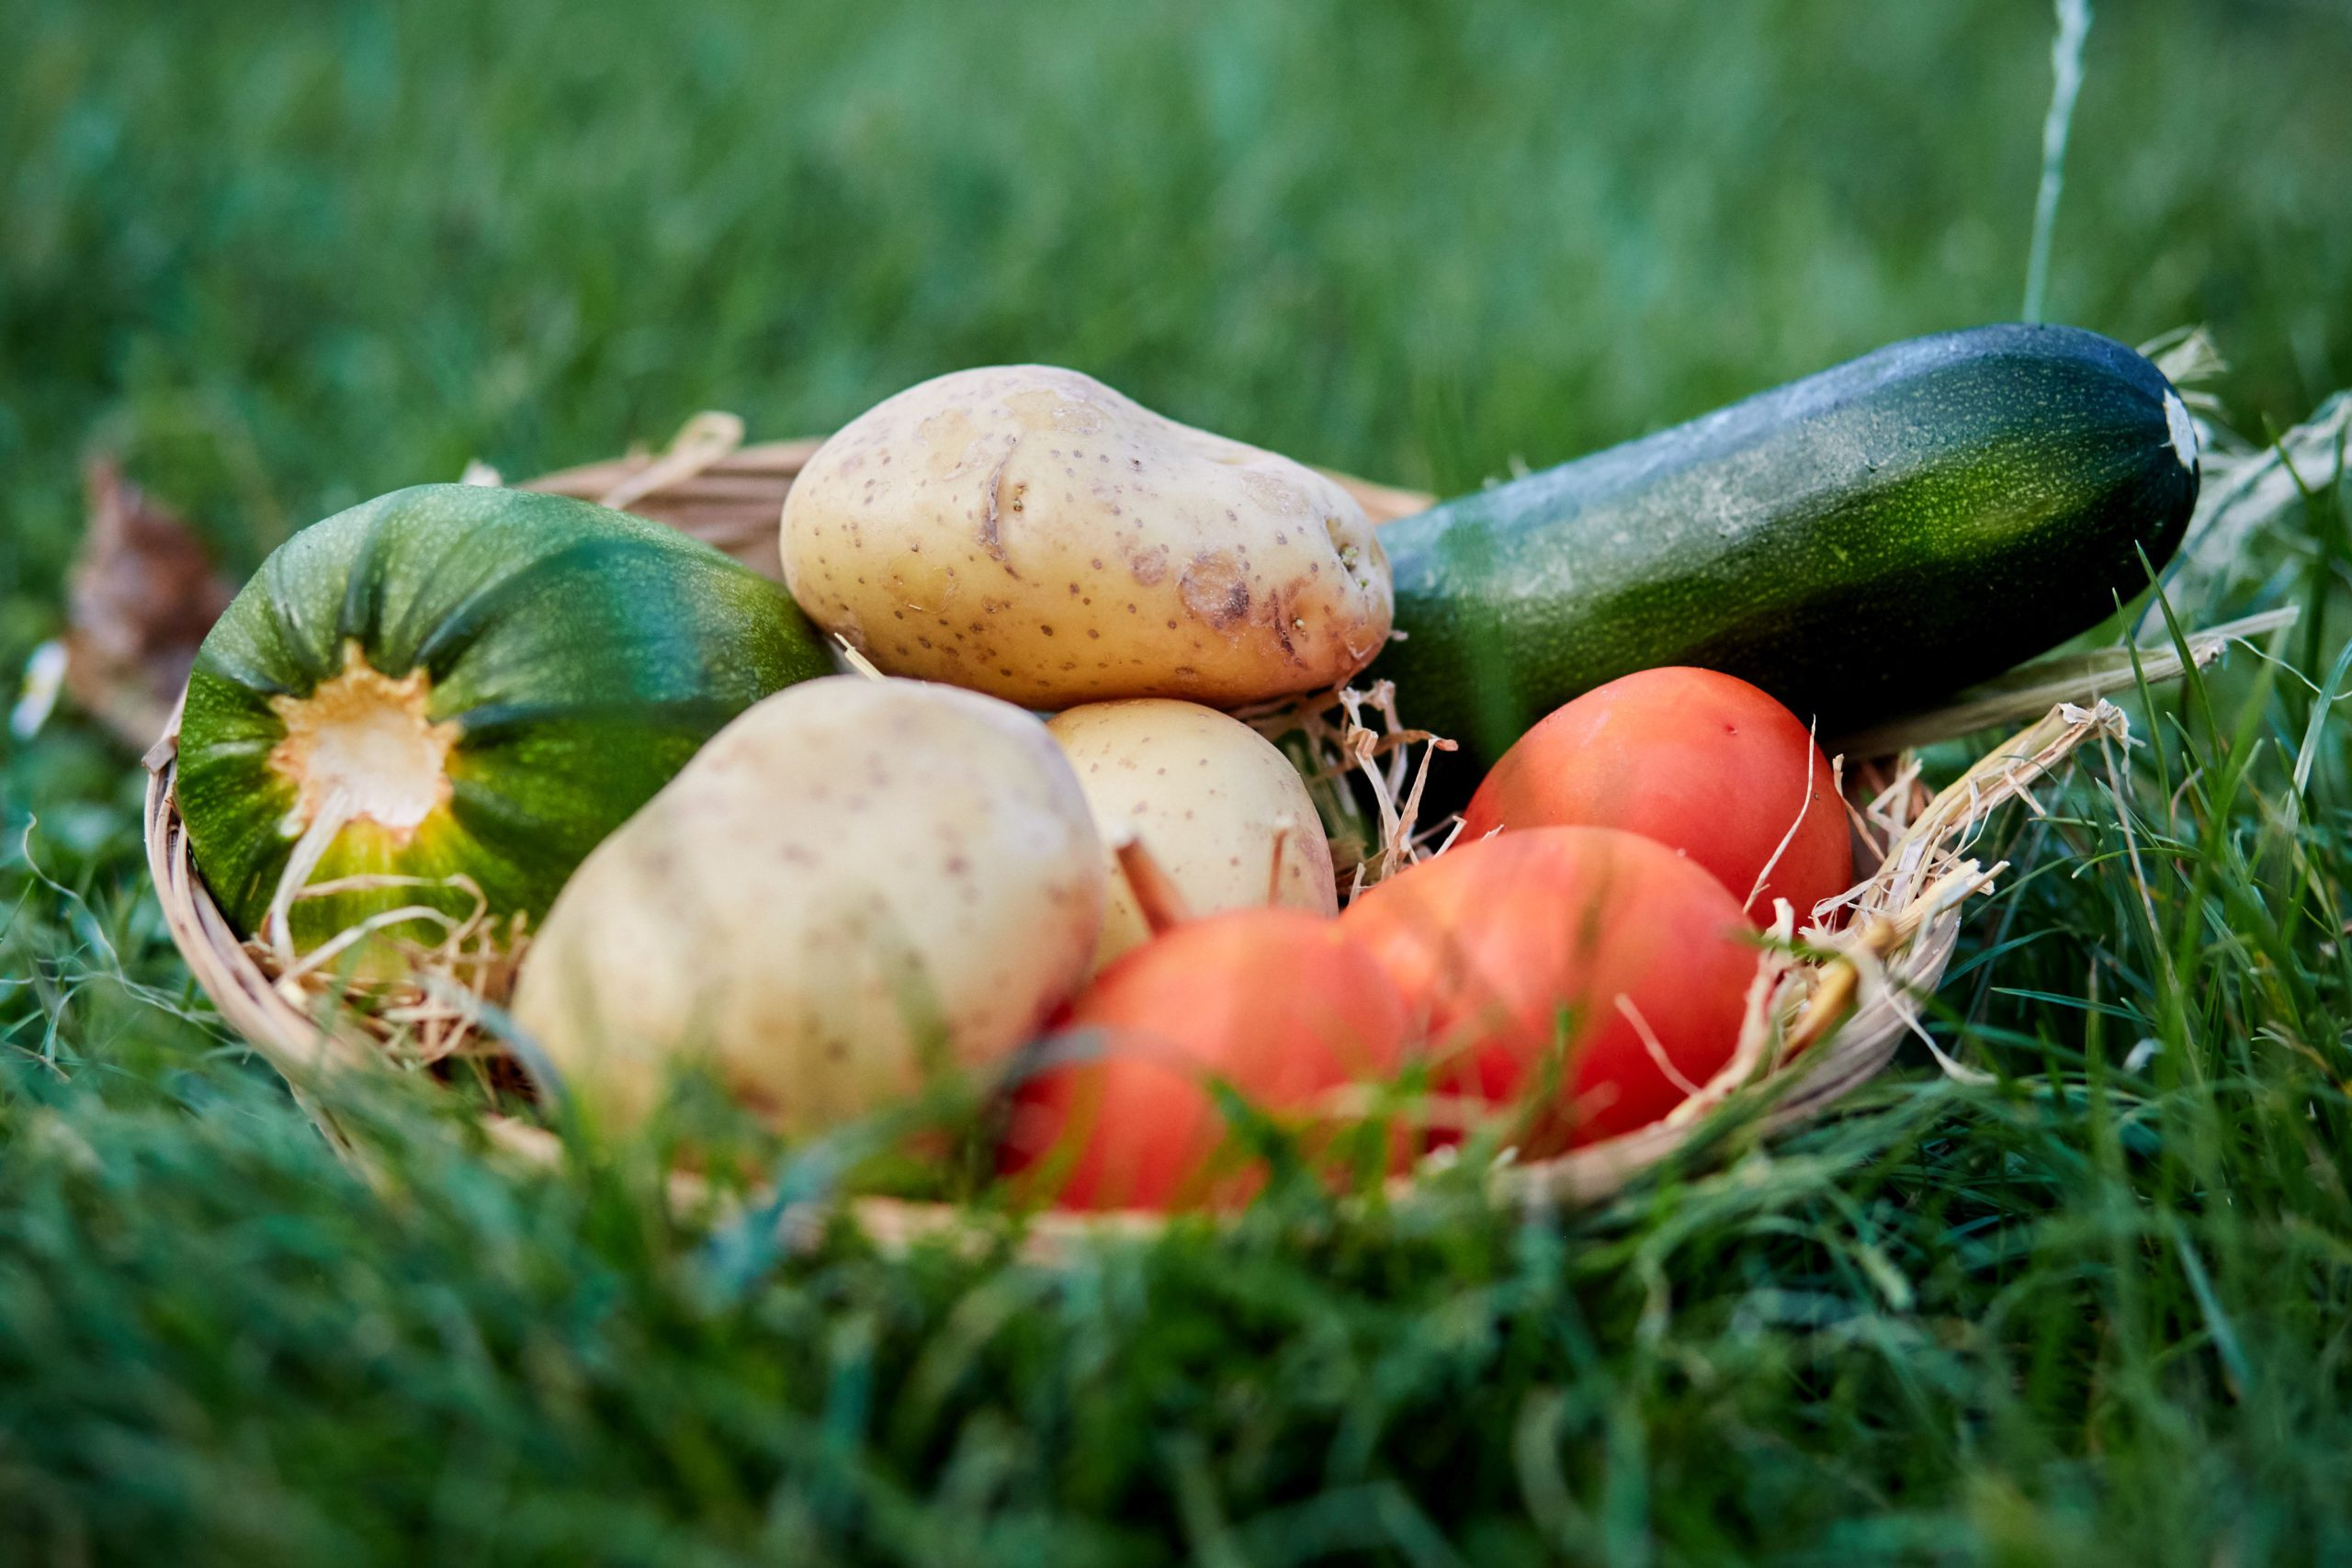 Malta's troubled agricultural sector: 2020 sees costs go up and revenue come down for operators